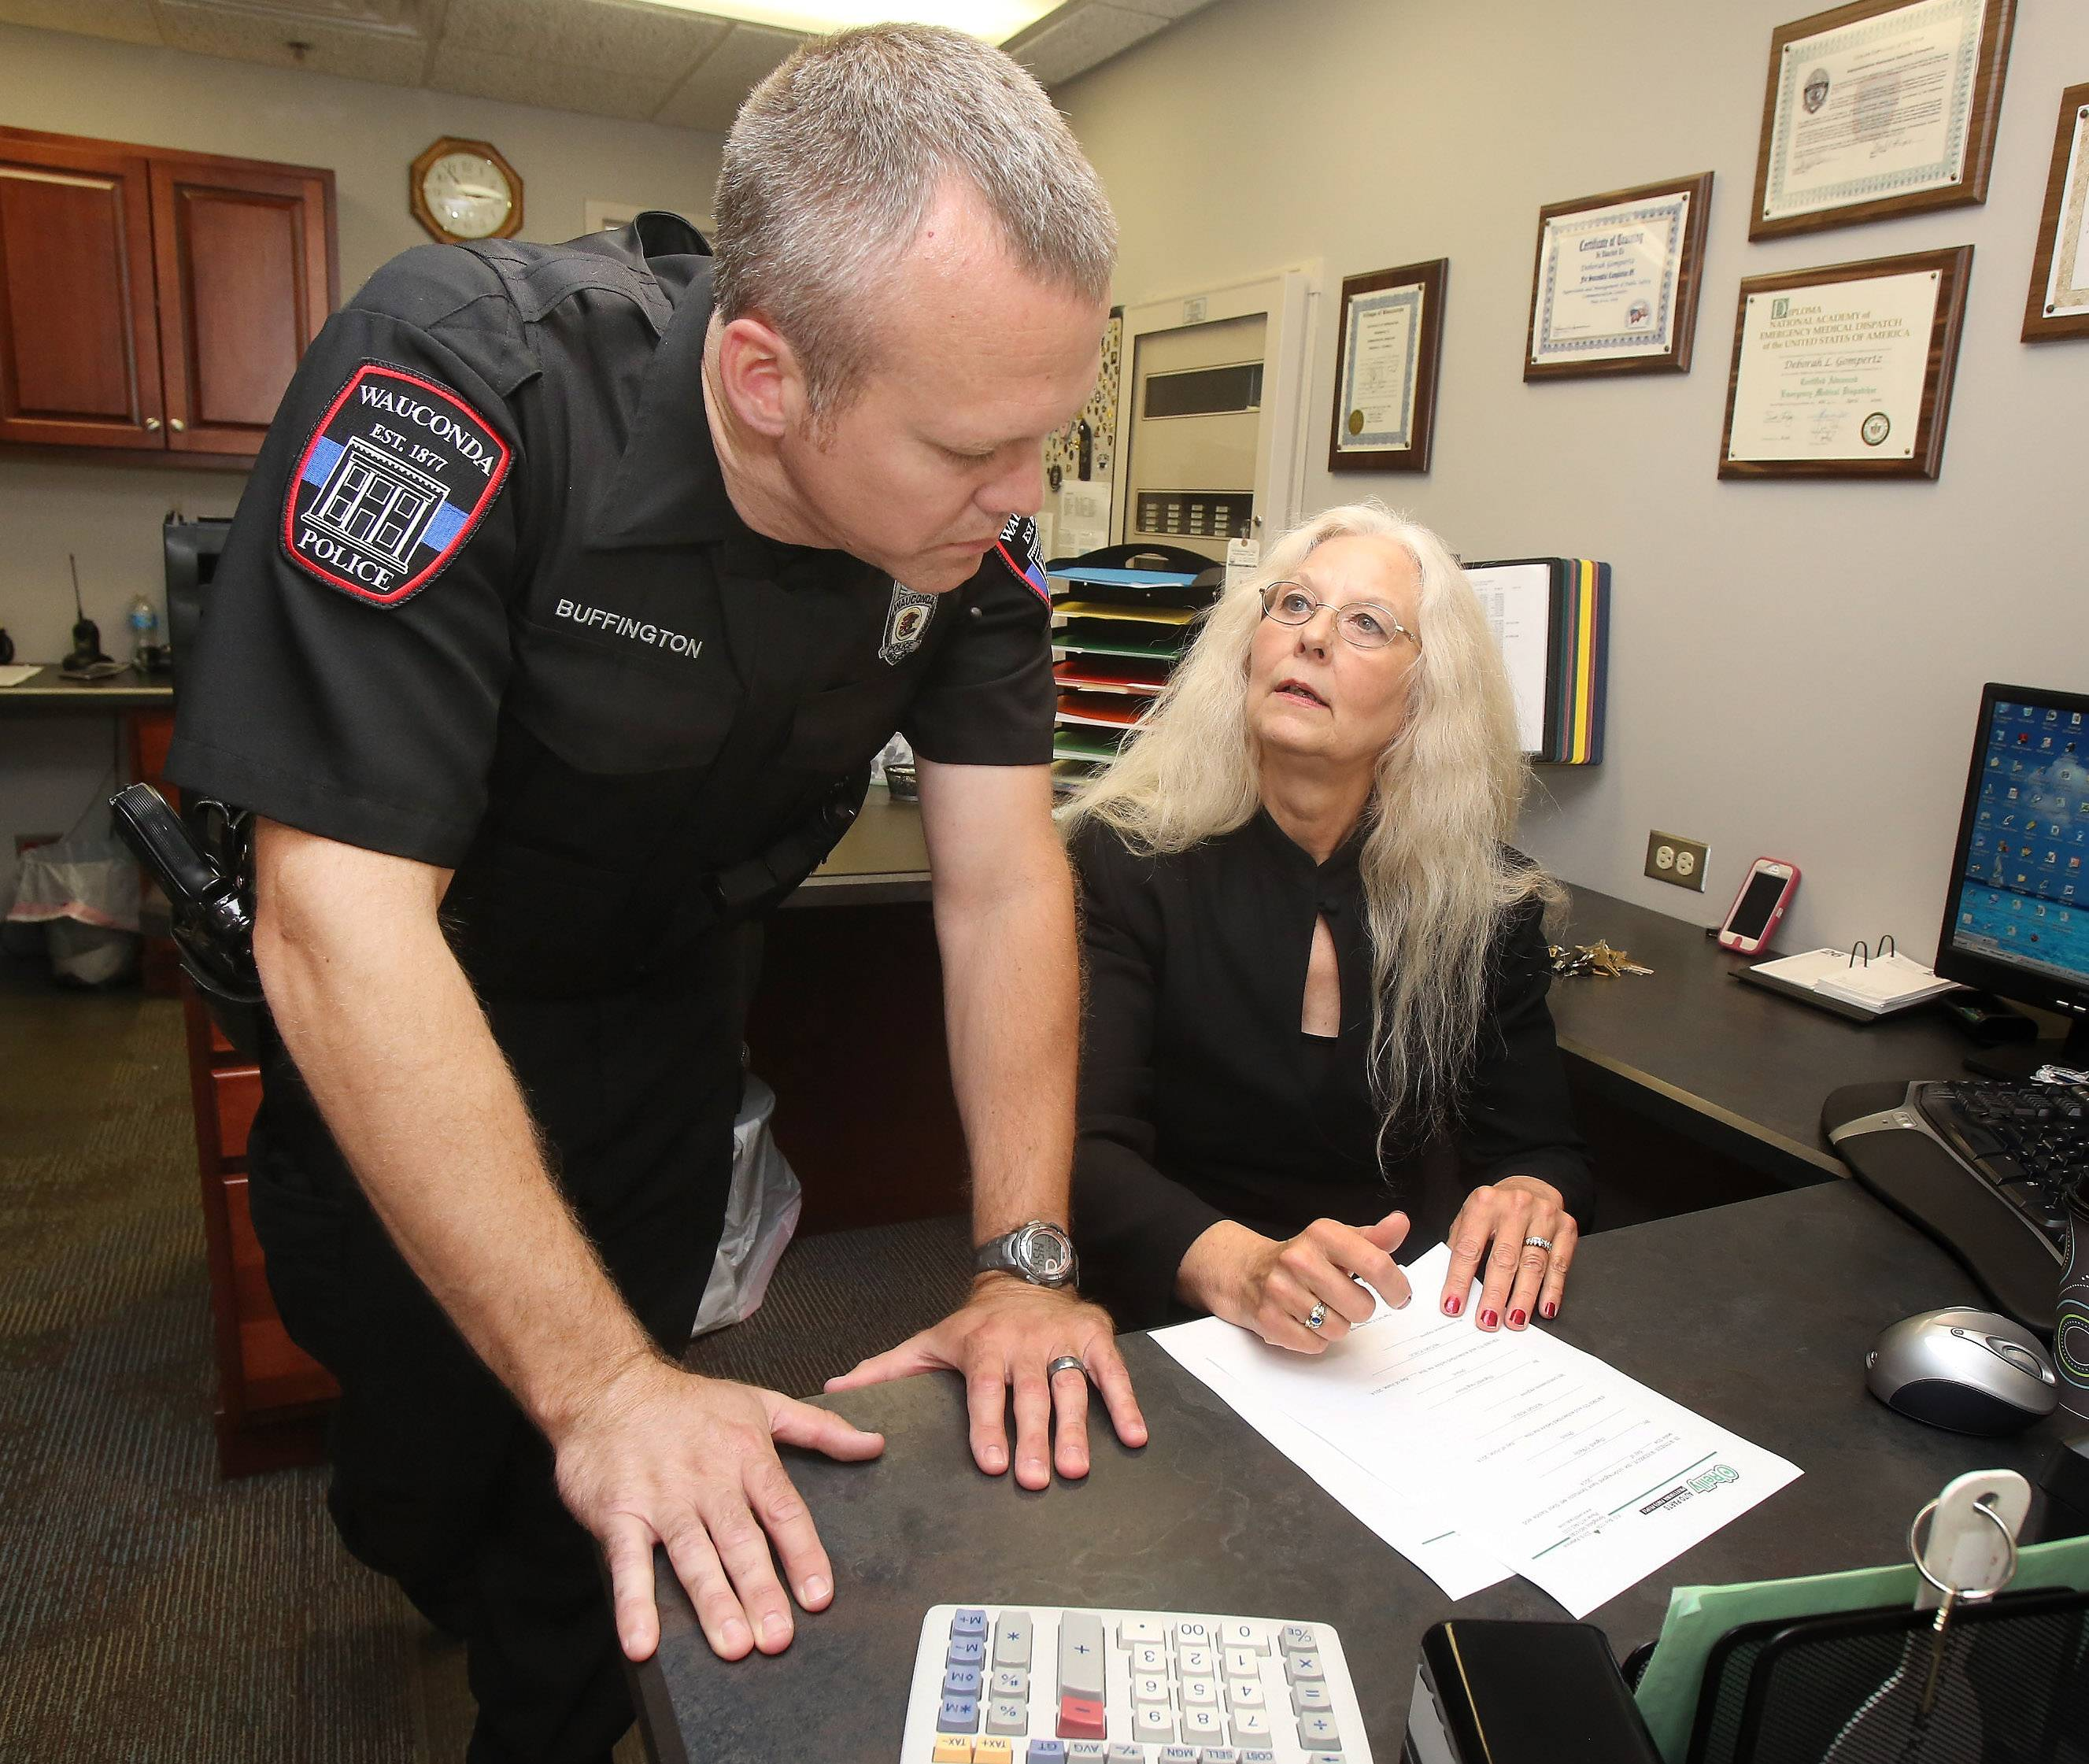 Wauconda Police Department Executive Assistant Deborah Gompertz talks with police officer Justin Buffington. Gompertz is celebrating 40 years with the department where she started as a dispatcher in June 1974.